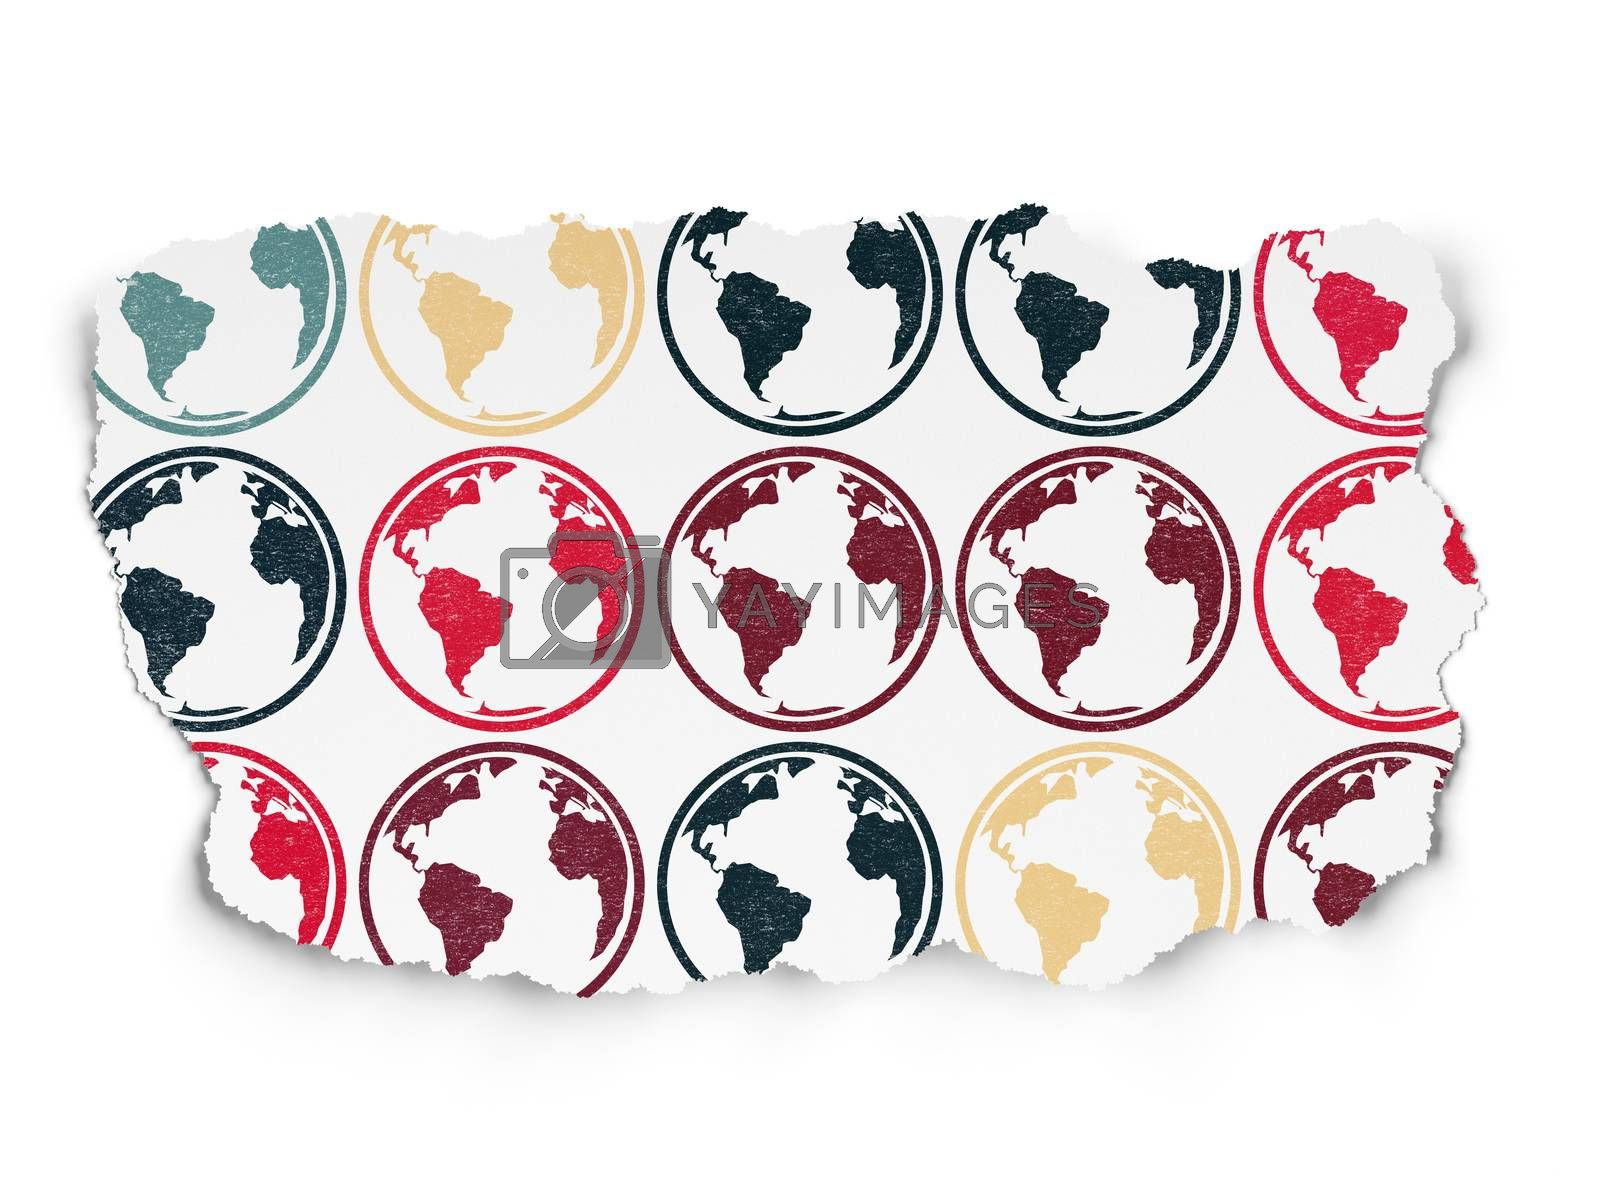 Science concept: Globe icons on Torn Paper background by maxkabakov